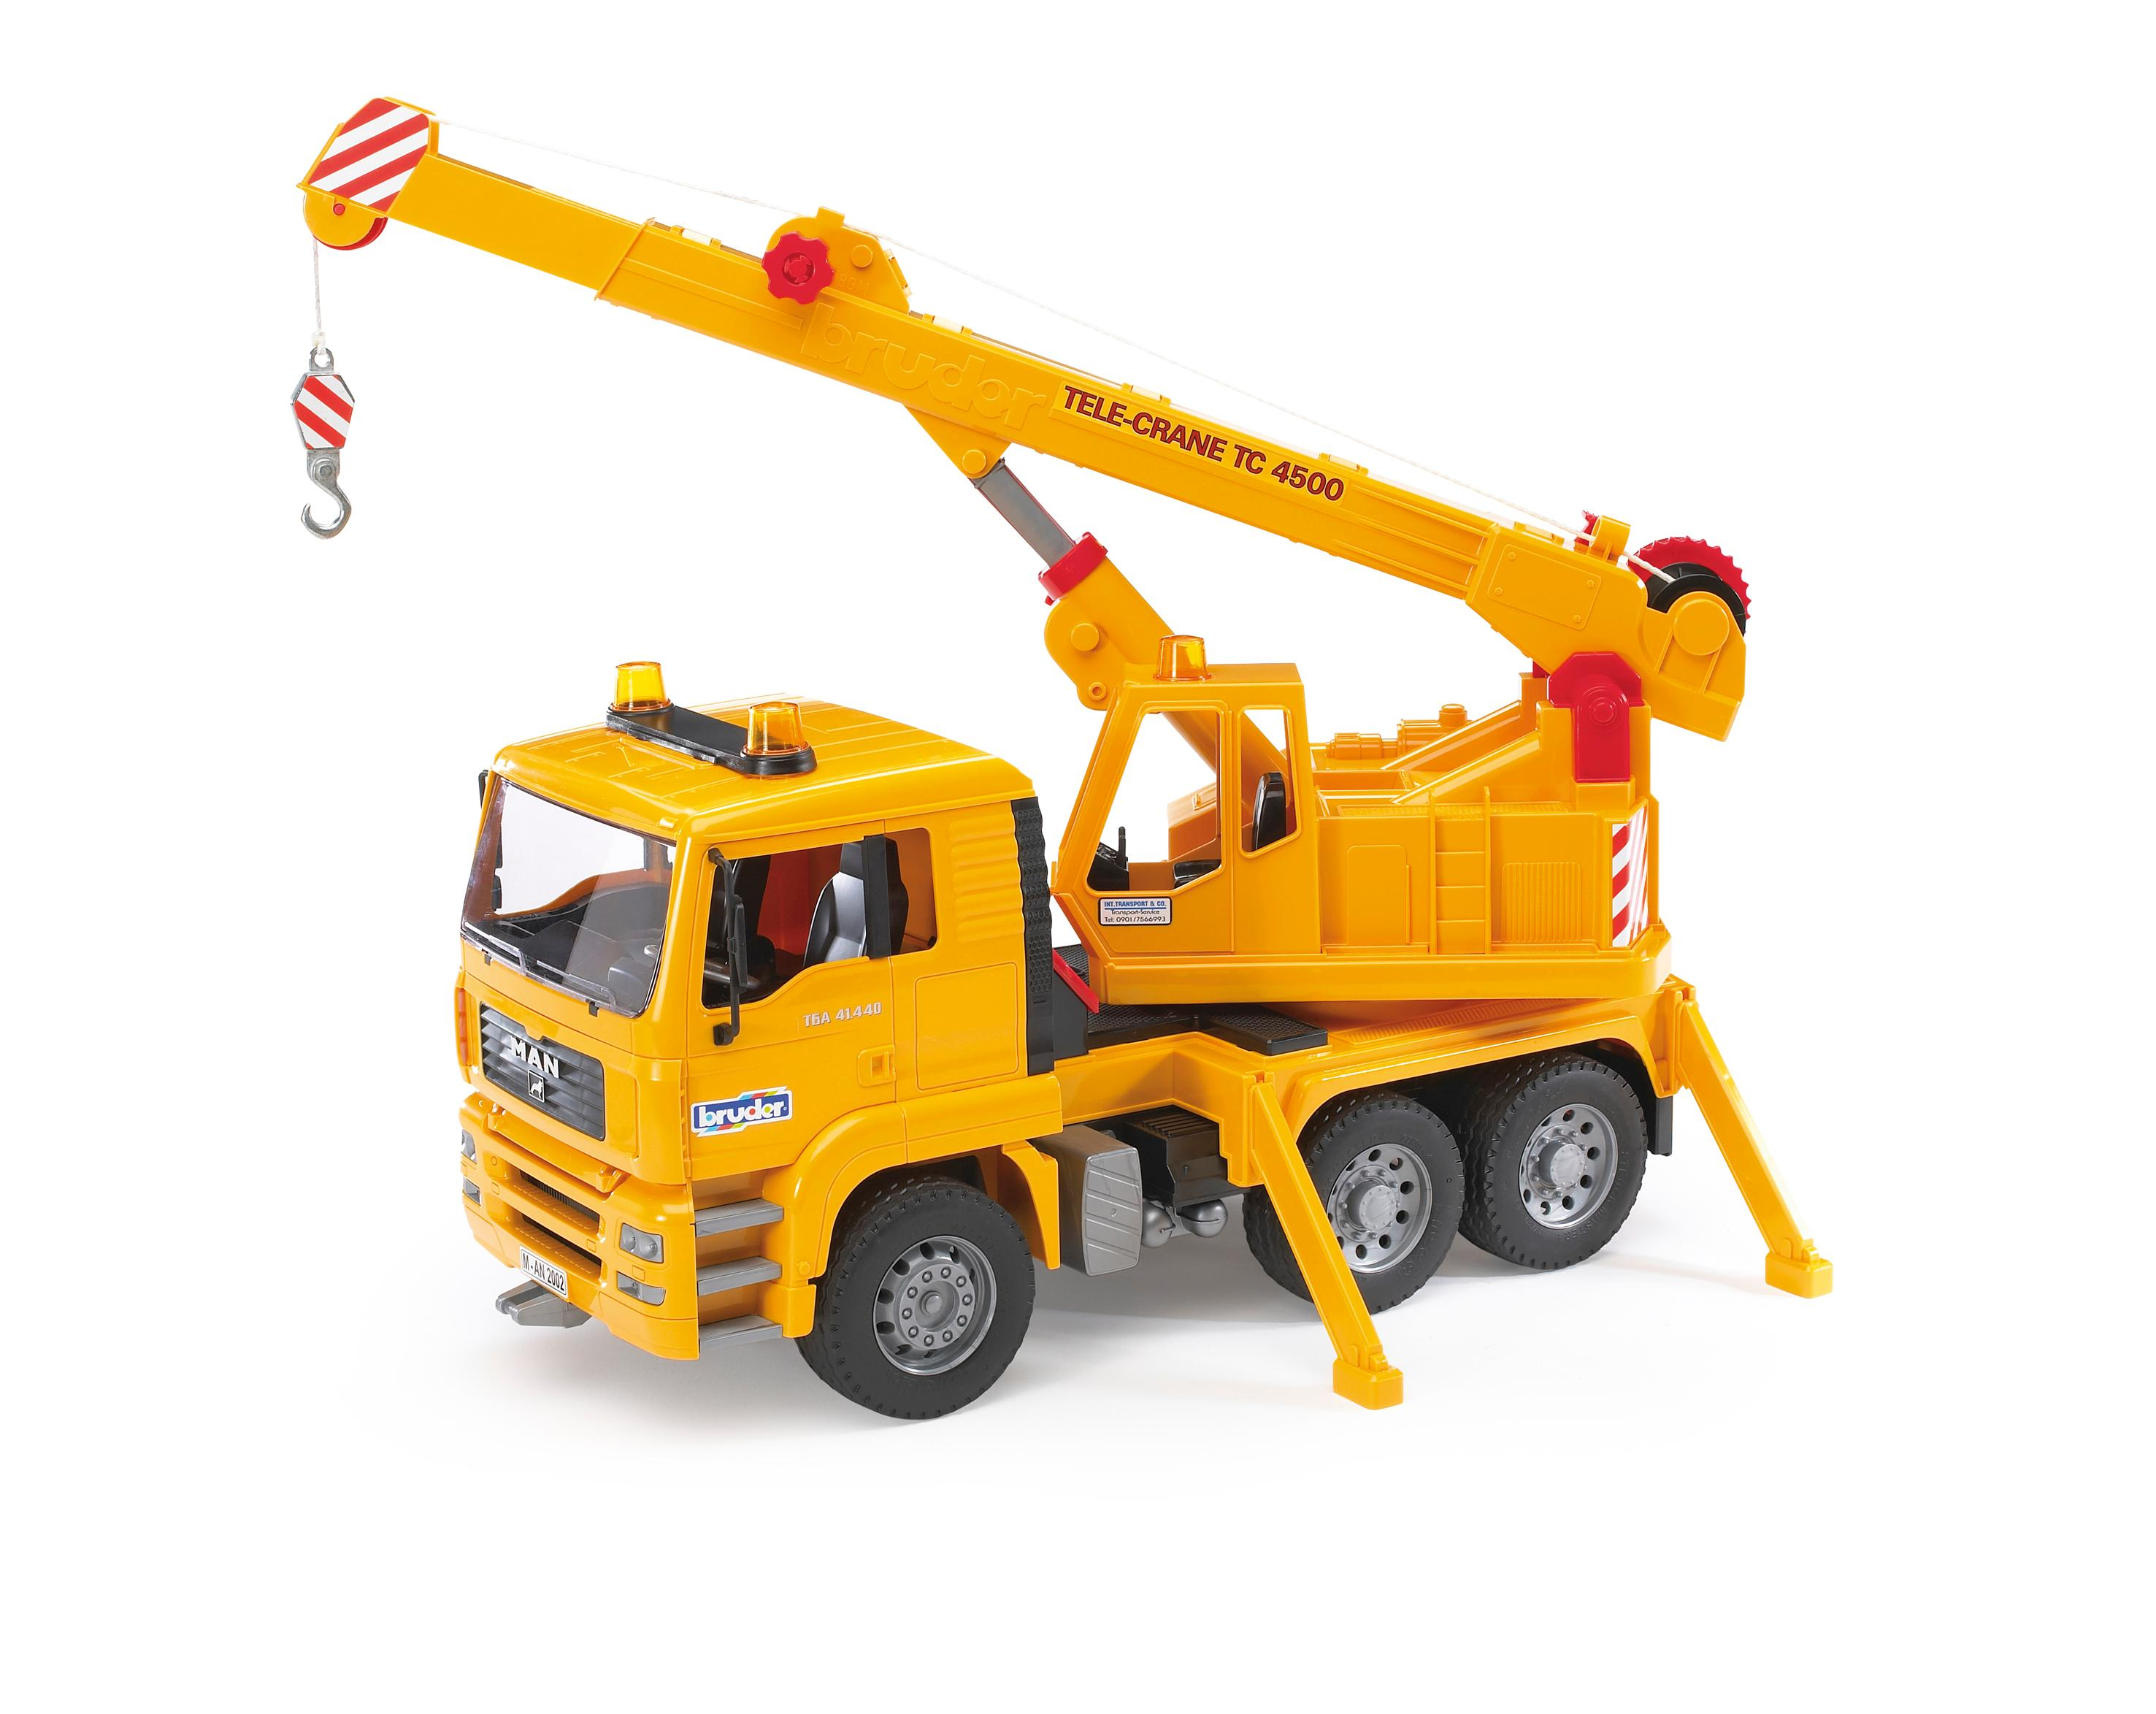 Bruder Construction Toys For Boys : Amazon bruder man crane truck toys games